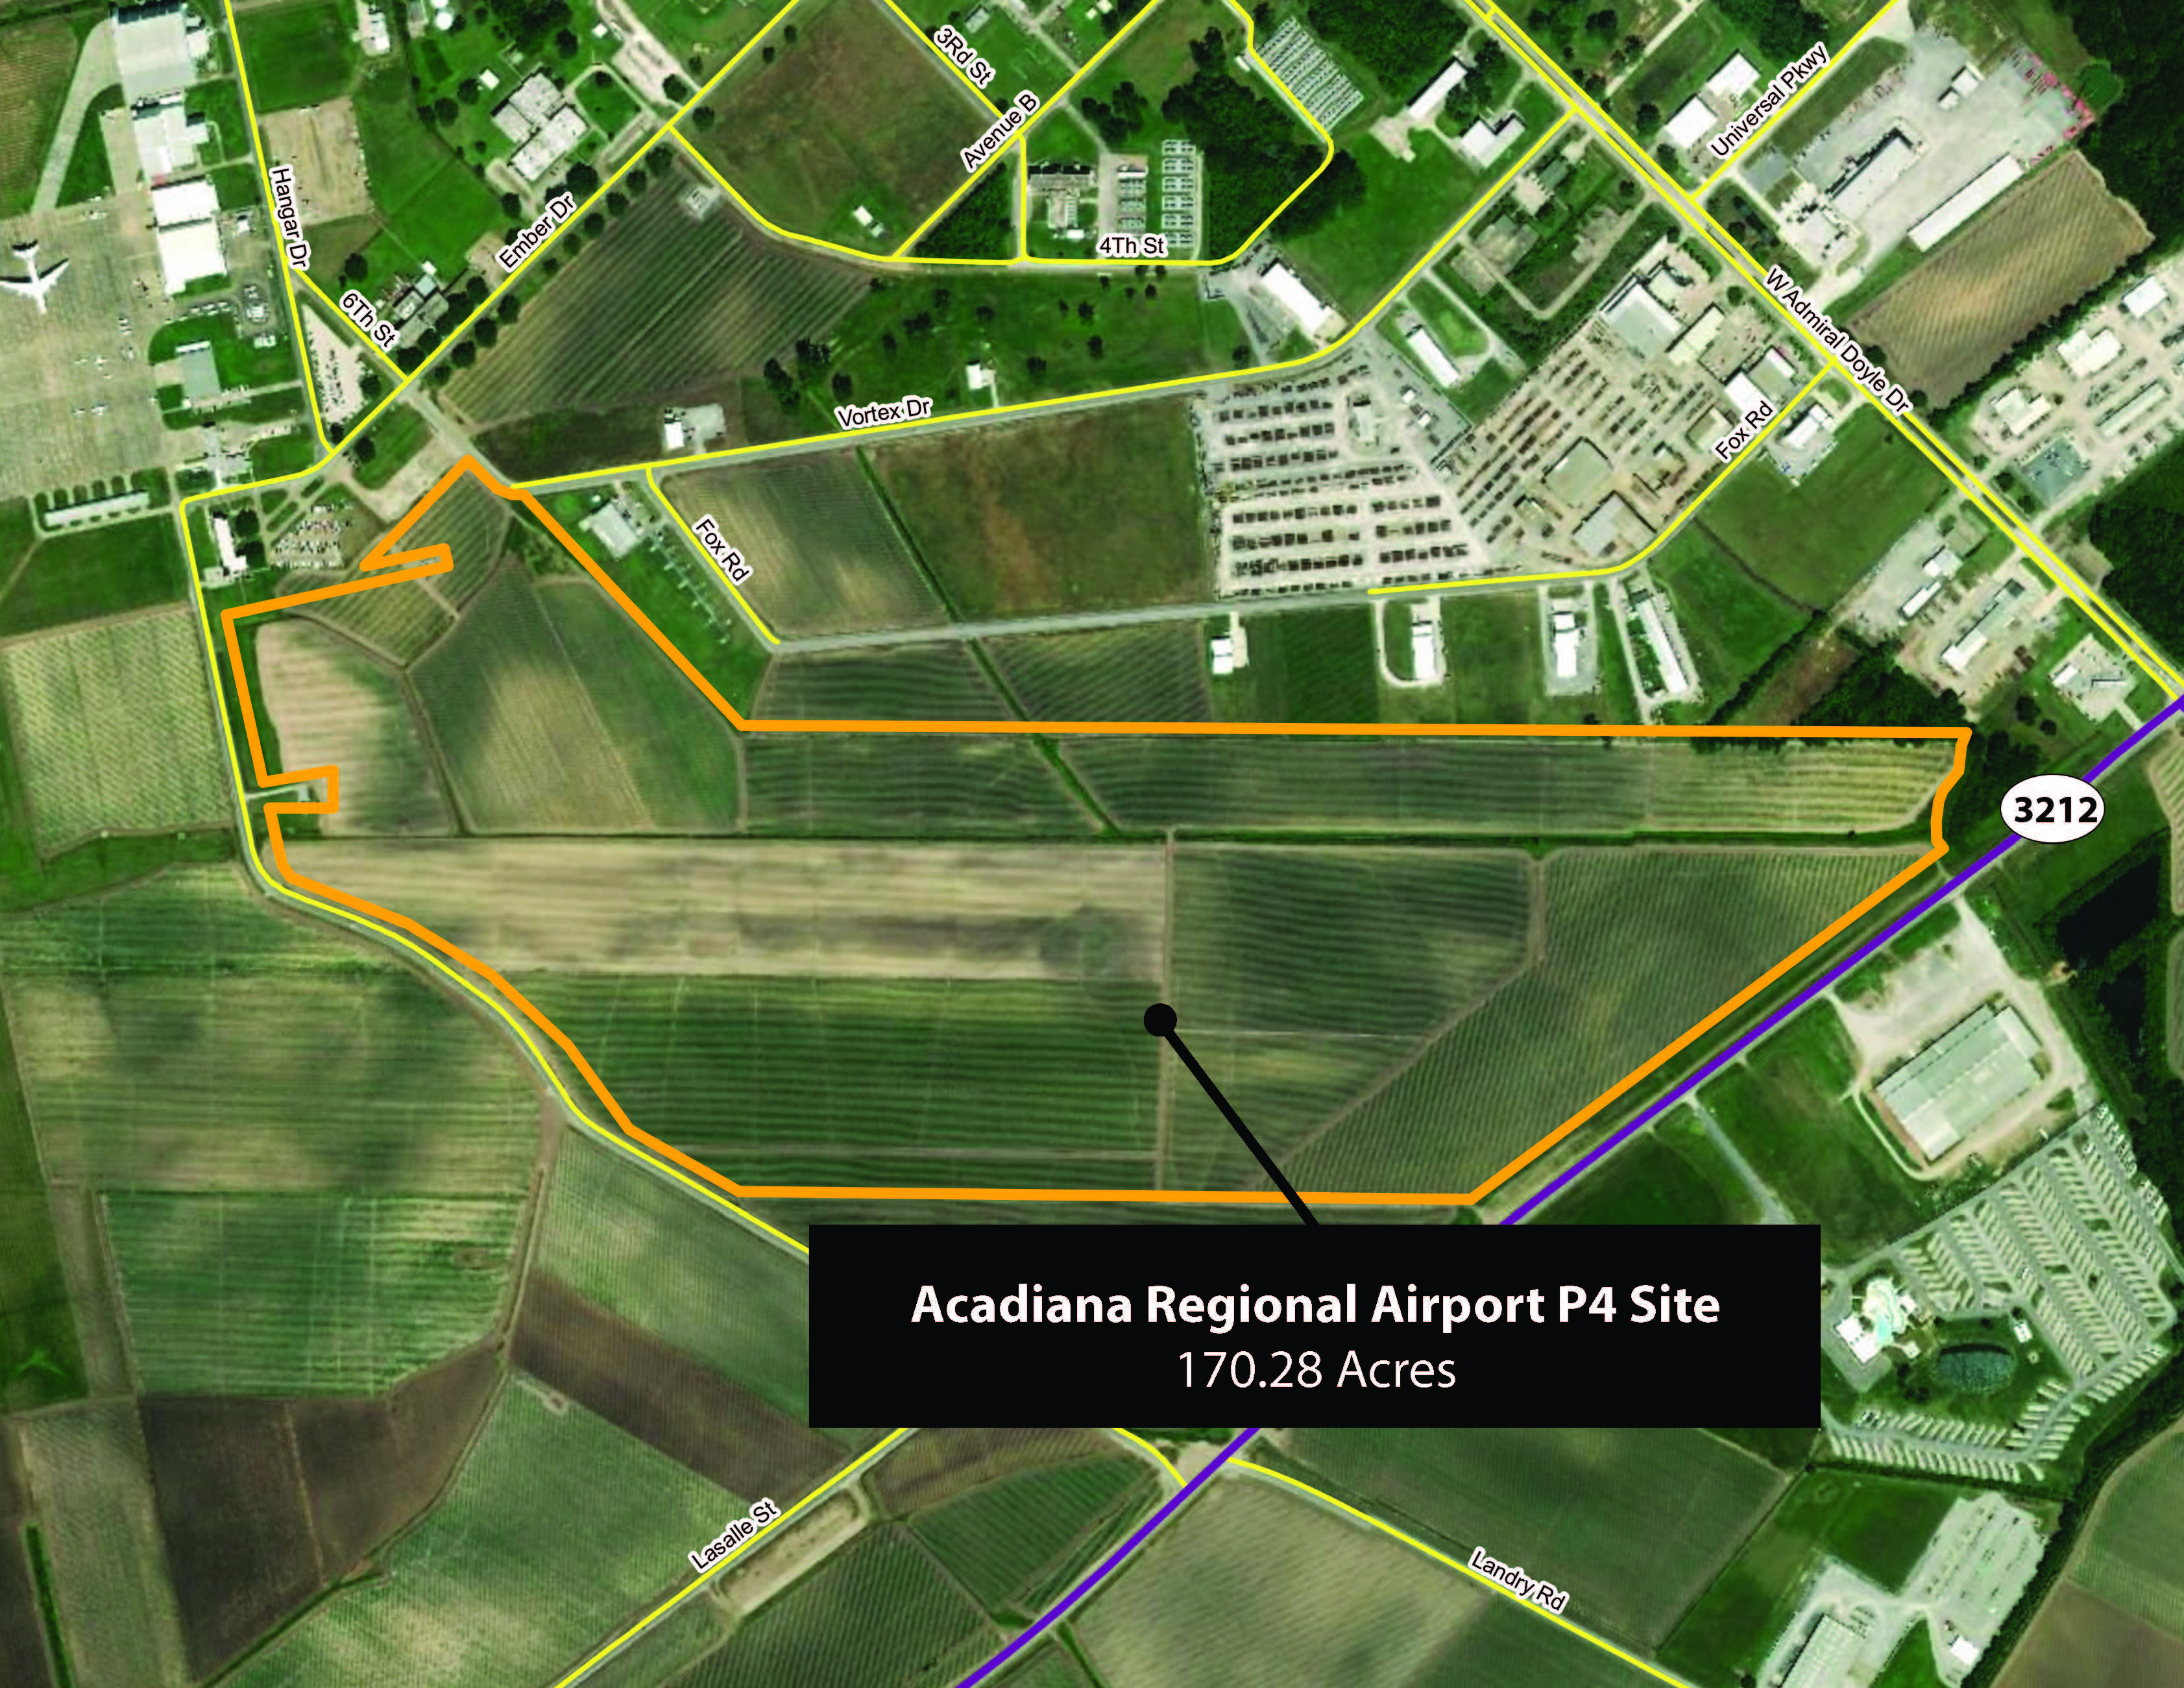 Acadiana Regional Airport P4 Site Aerial map